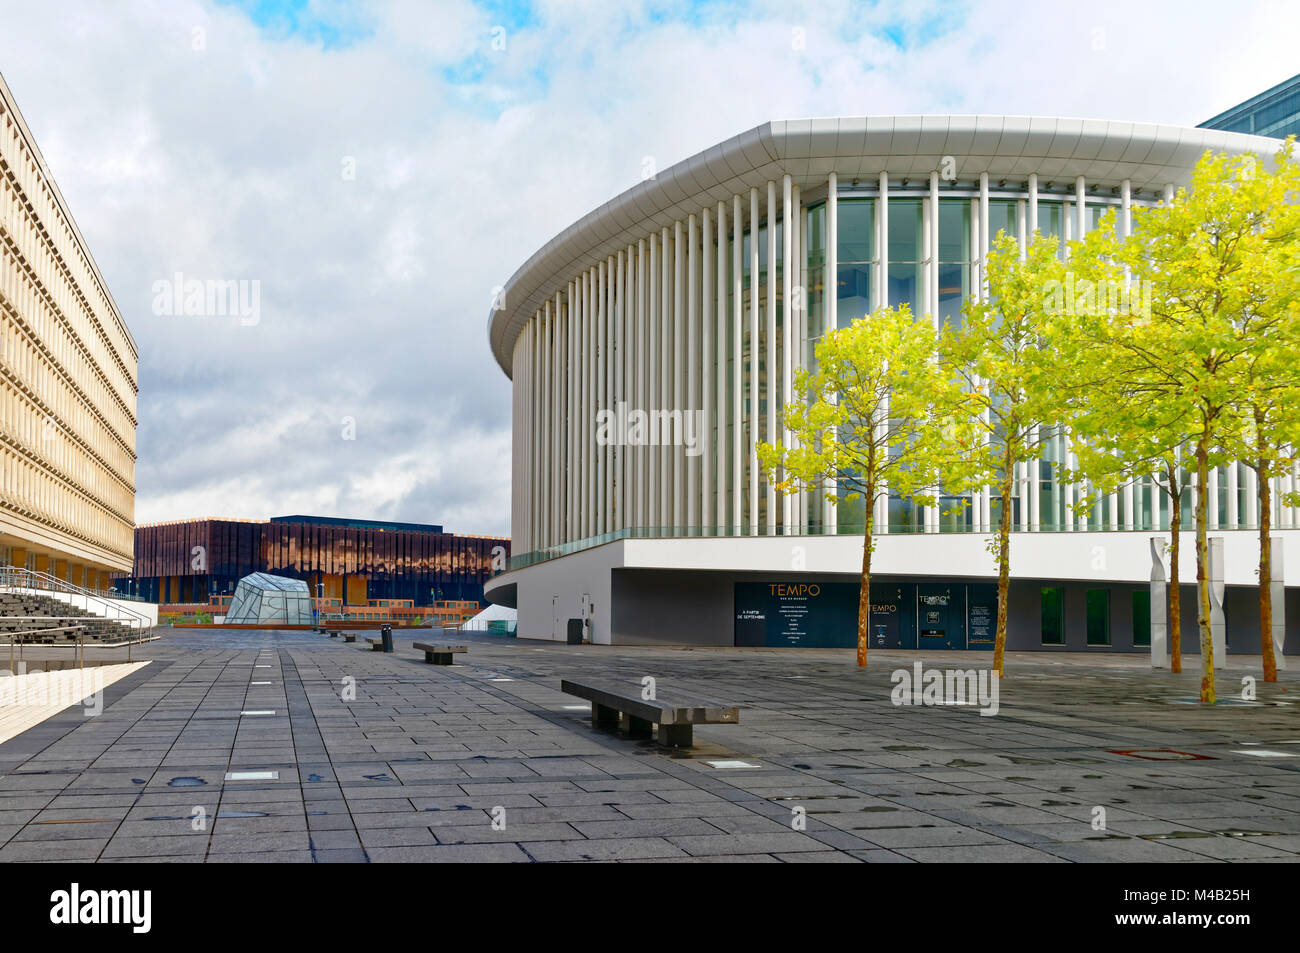 Luxembourg,philharmonic concert hall,Place de l'Europe,European district,Luxembourg City, - Stock Image